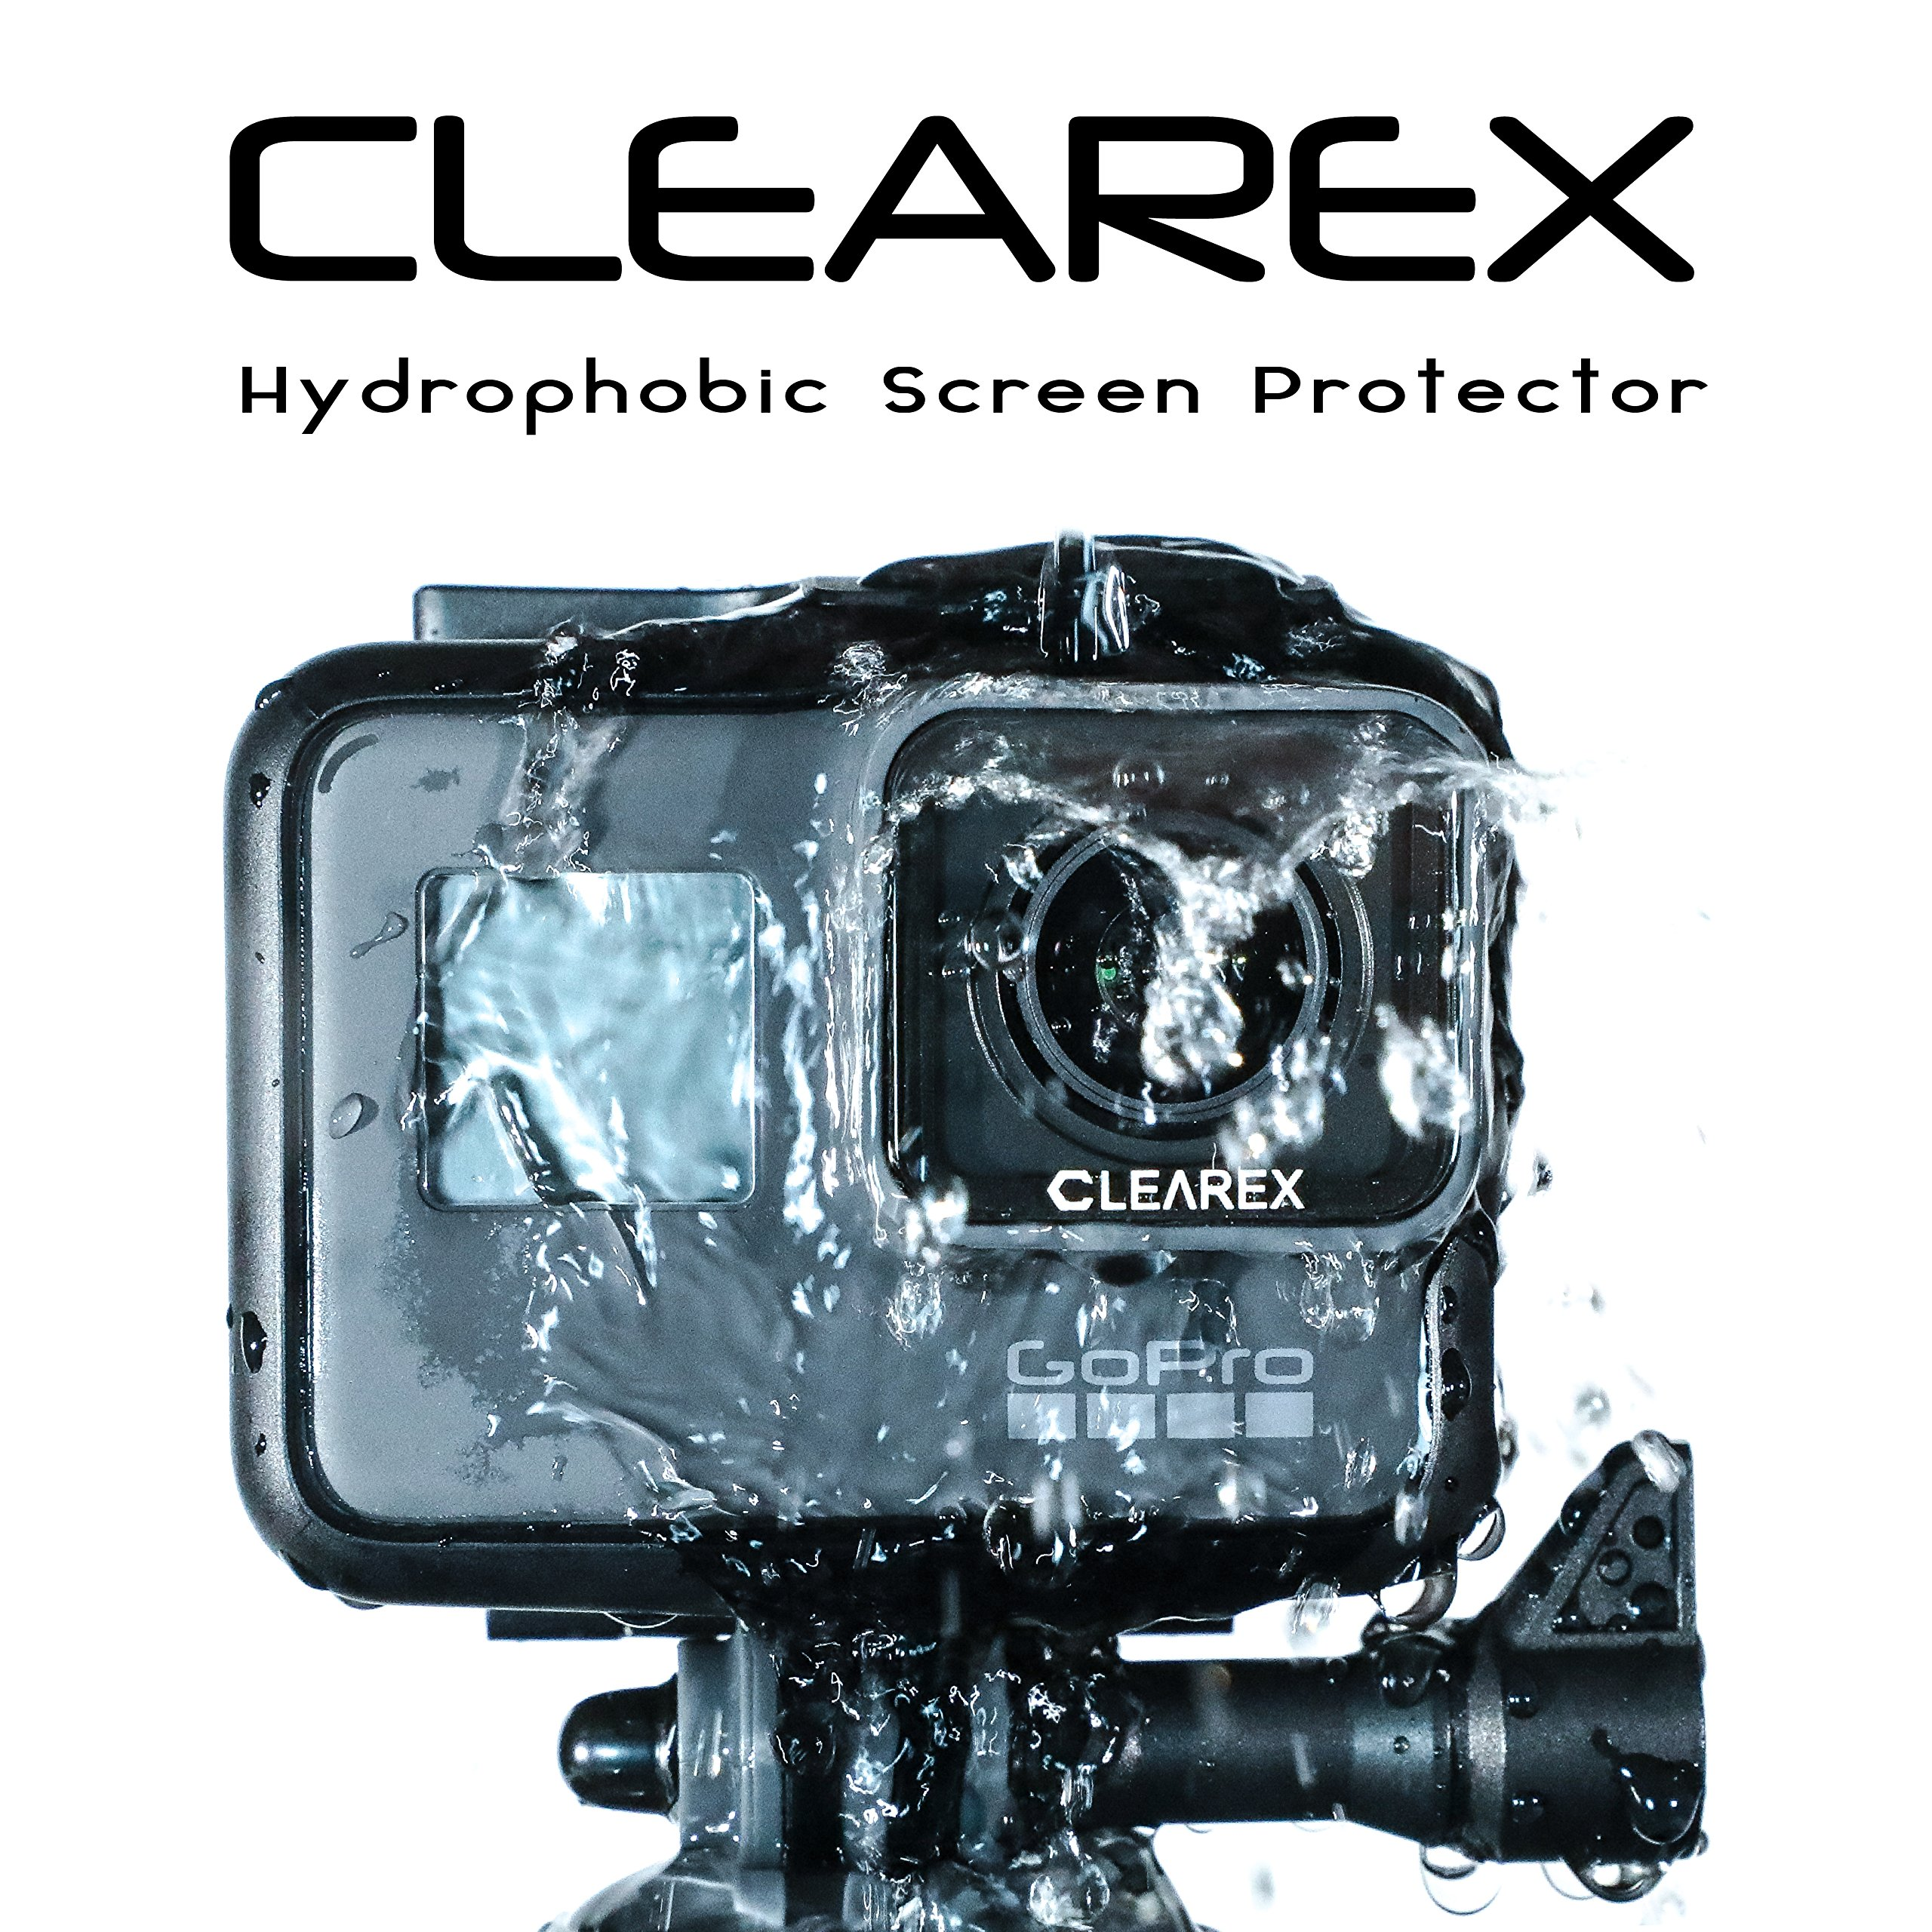 CLEAREX Hydrophobic Screen Protector for GoPro Hero 5, 6, 7 | Water Repellent, Tempered Glass, Ultra-Clear, Anti-Scratch | Capture Clearly (GoPro 5, 6, 7-Black) by Axion